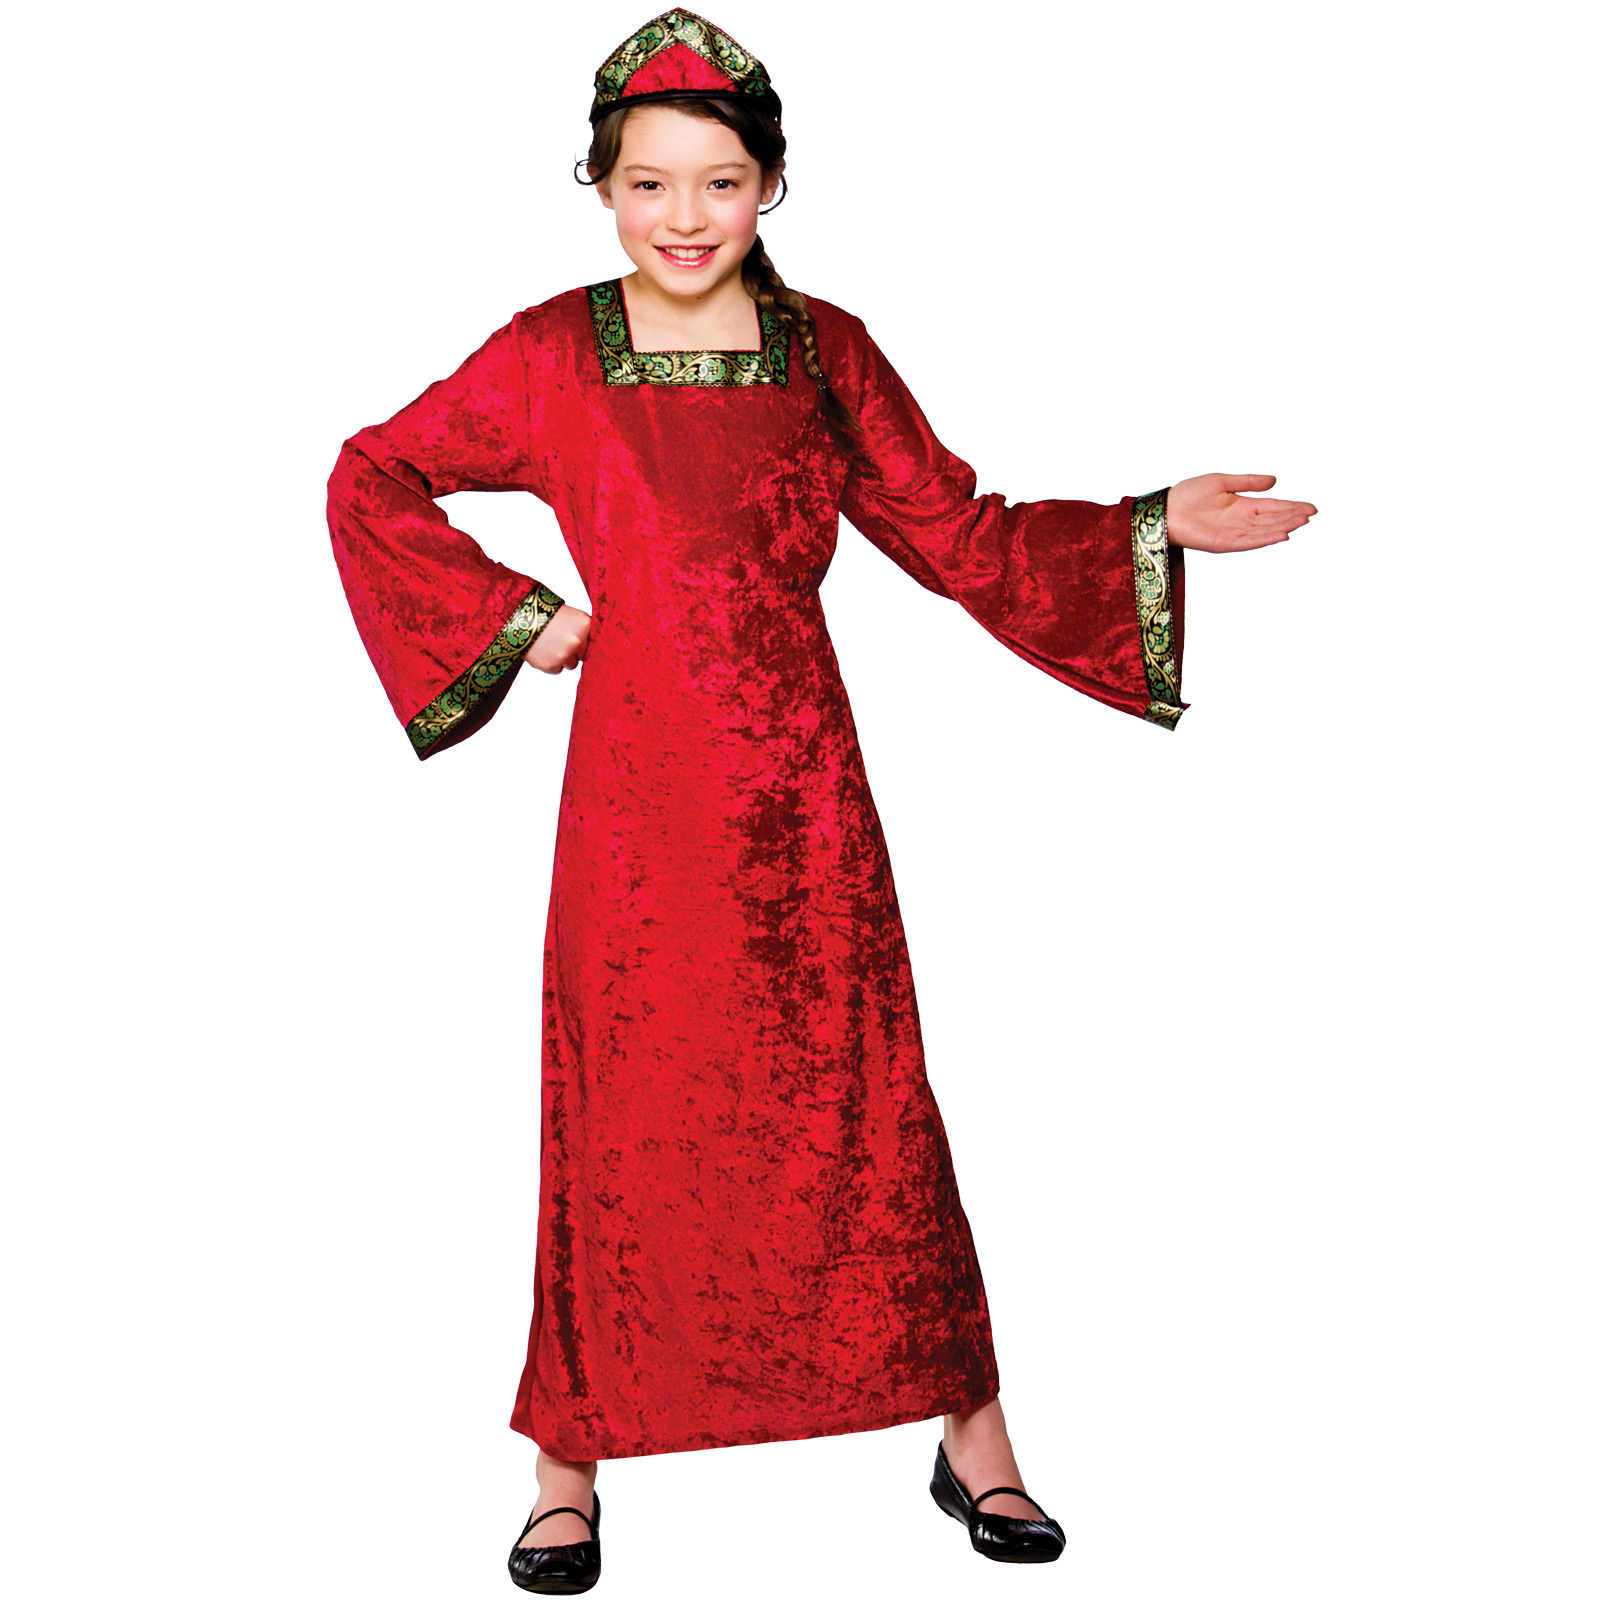 Halloween Girls Princess Fancy Dress Up Costume Outfits: Girls Red Medieval Princess Costume Fancy Dress Up Party